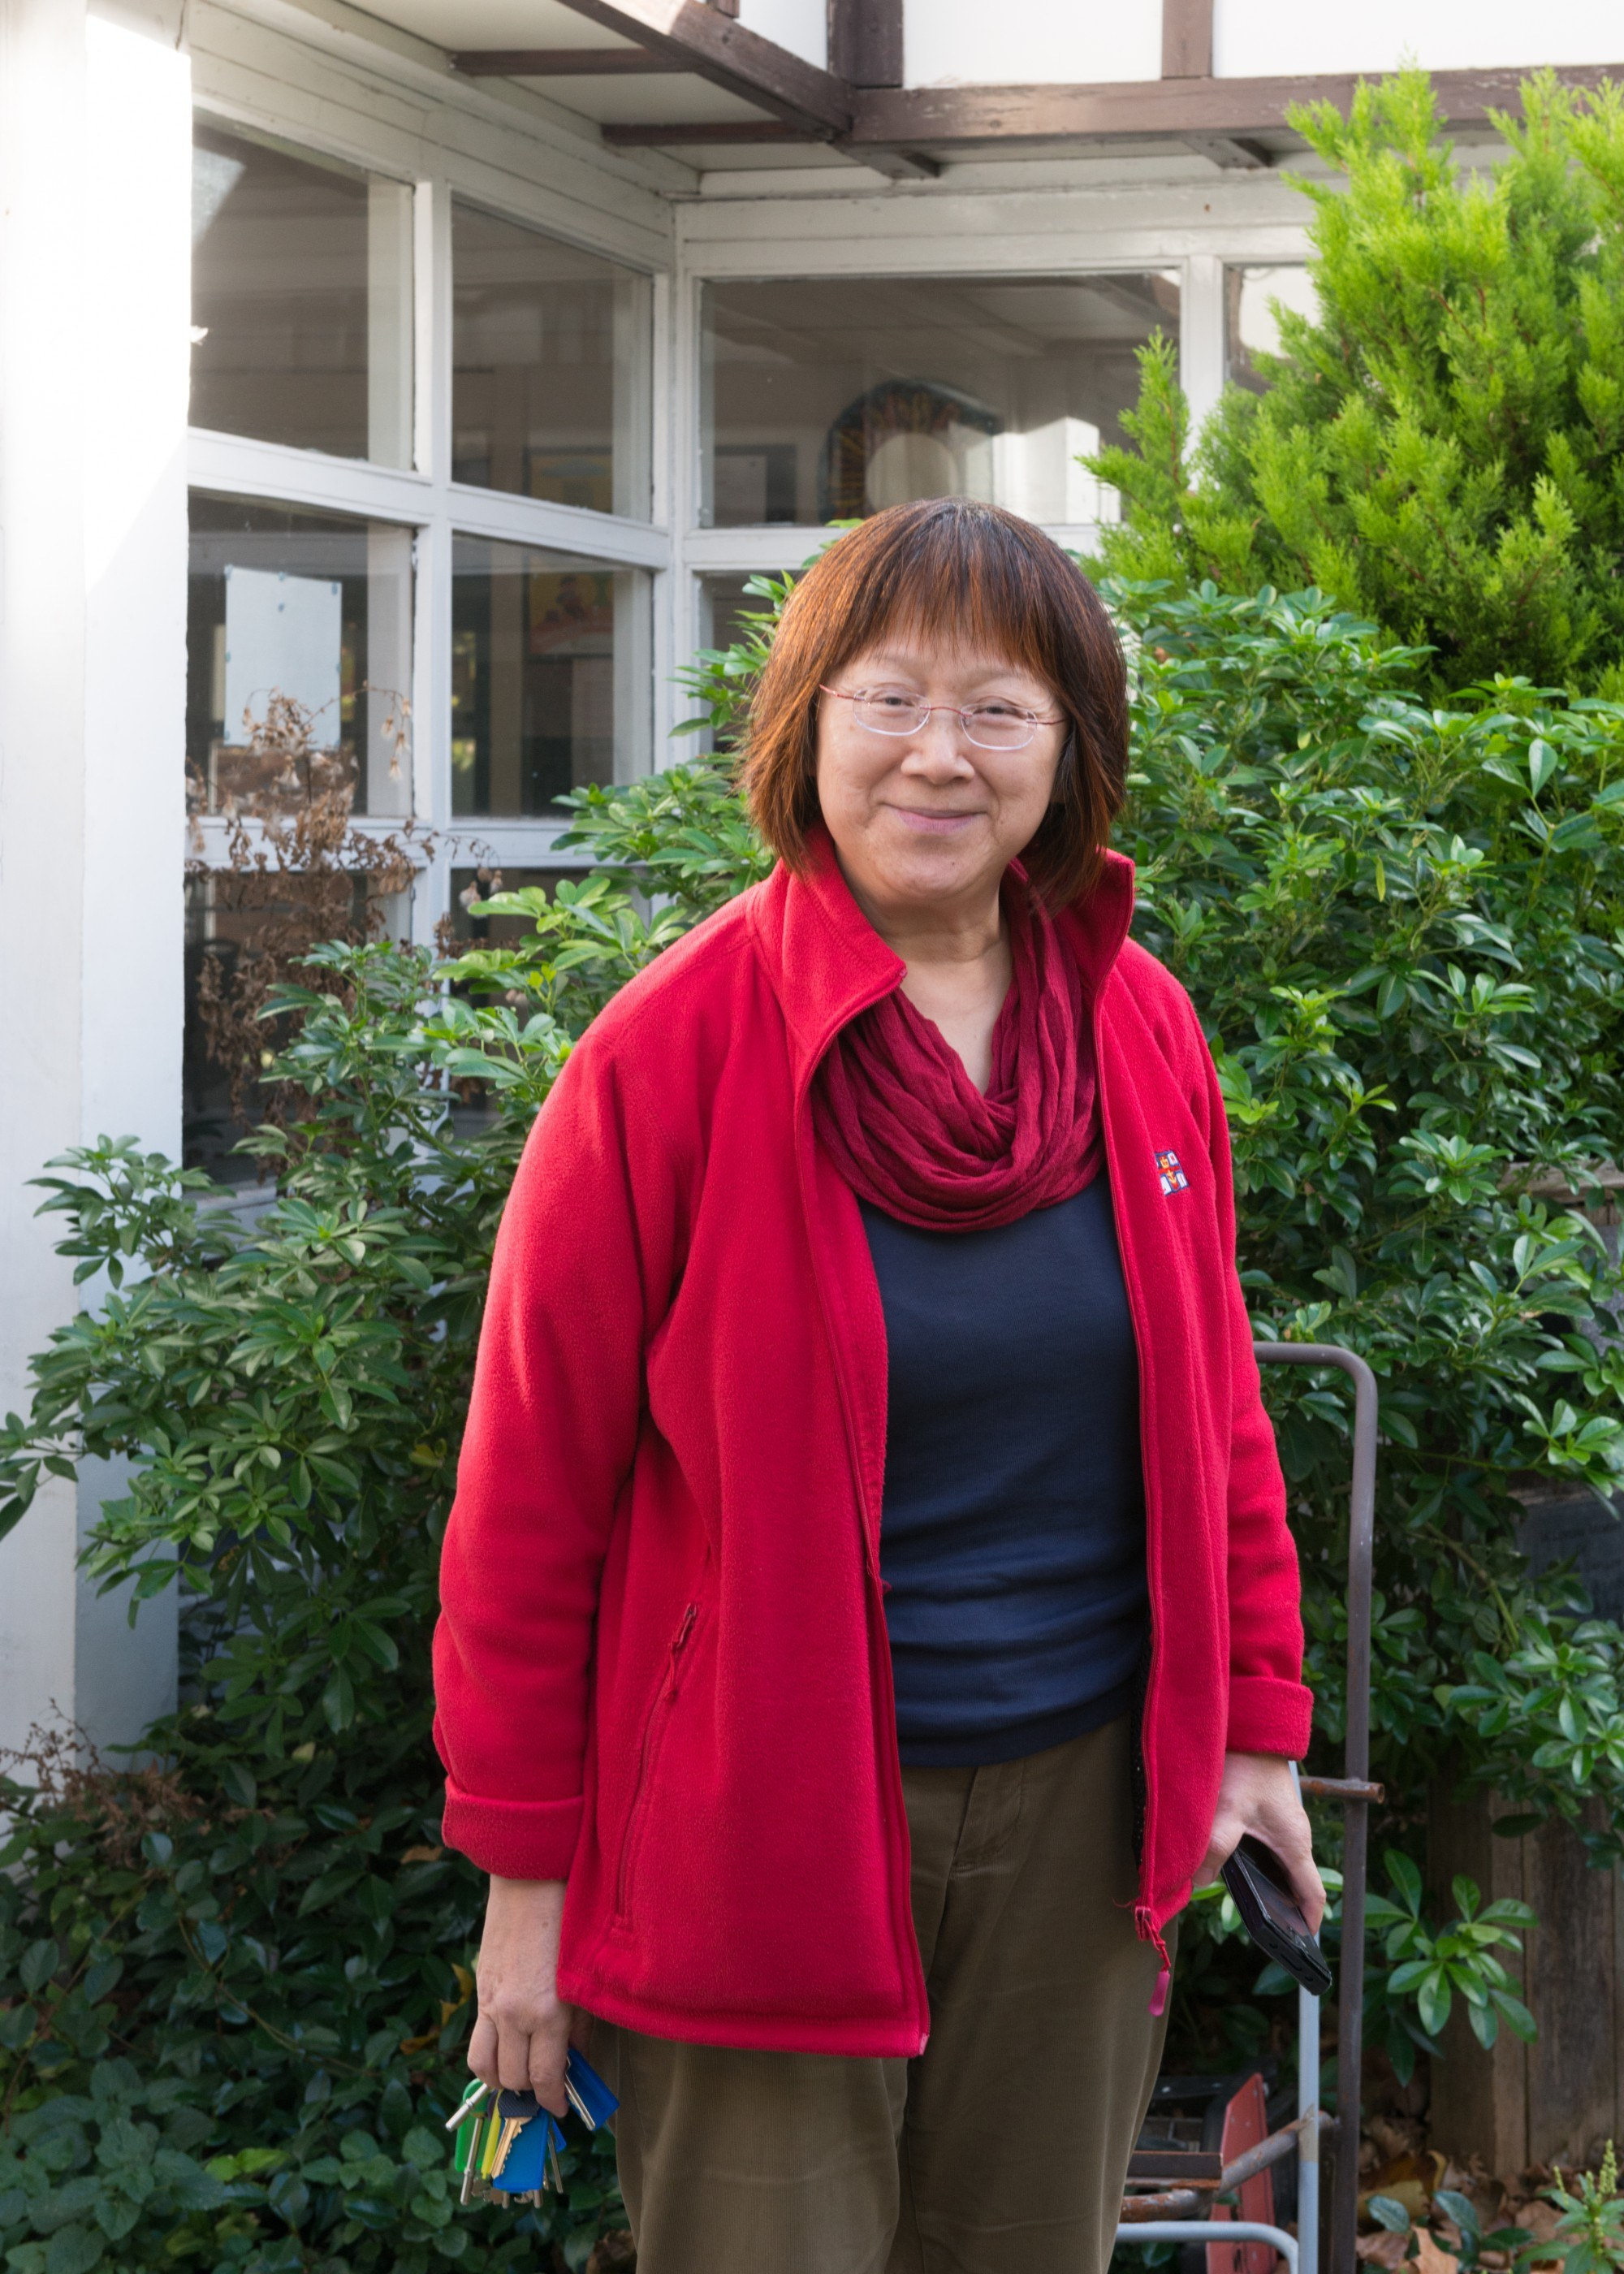 Portrait of Gill Tan, smiling slightly, outside with foliage in the background